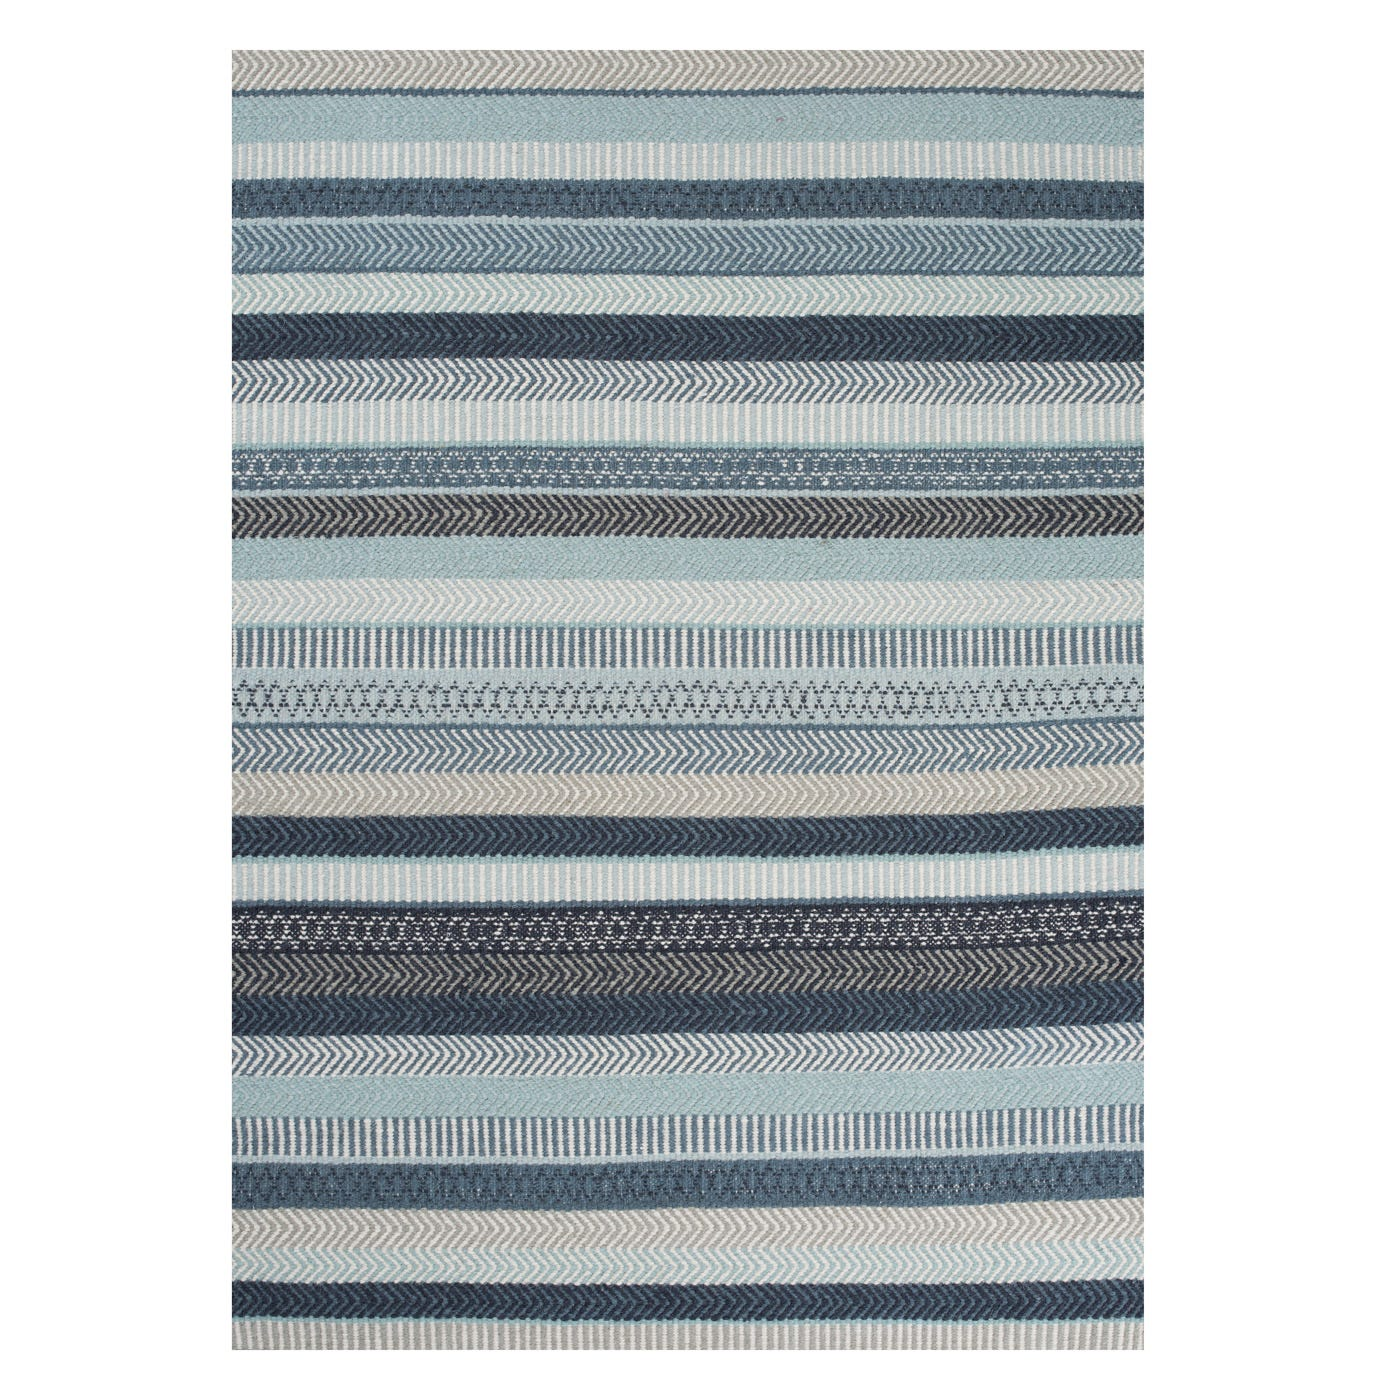 8 X 10 Rugs Area For Less 215 White